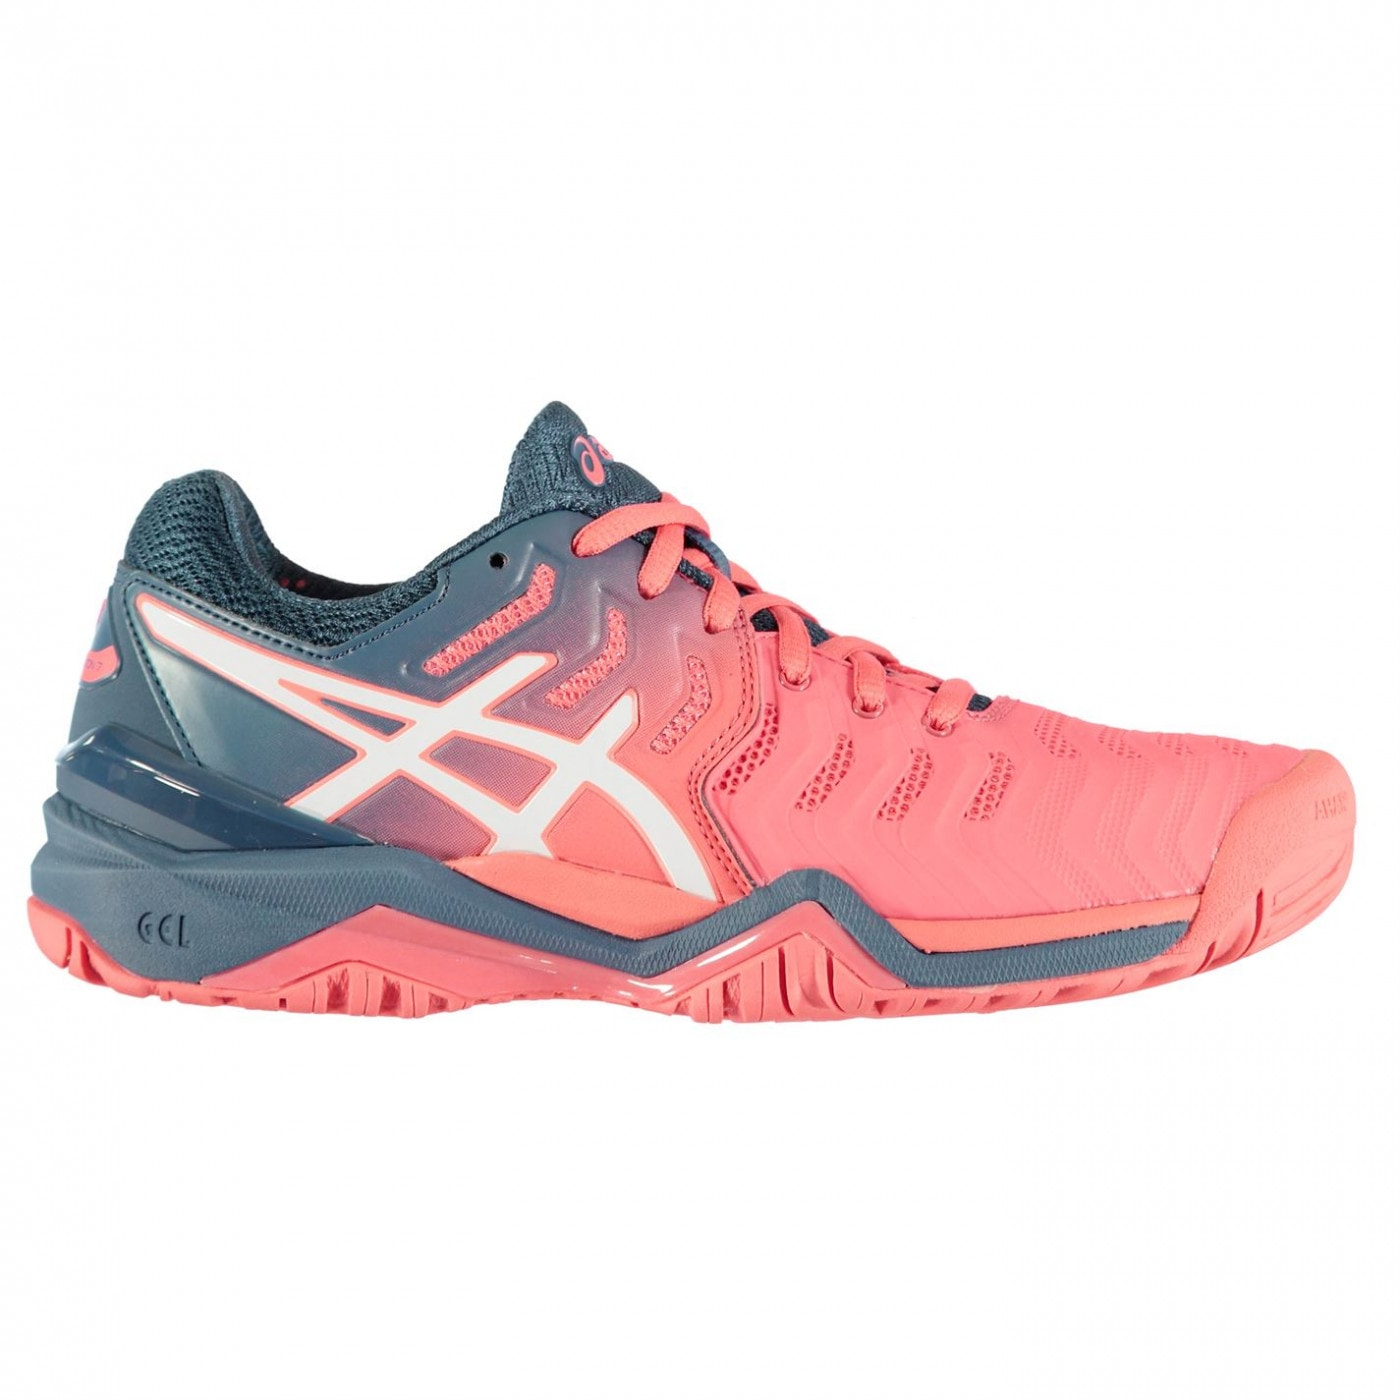 Asics Gel Resolution 7 Ladies Tennis Shoes